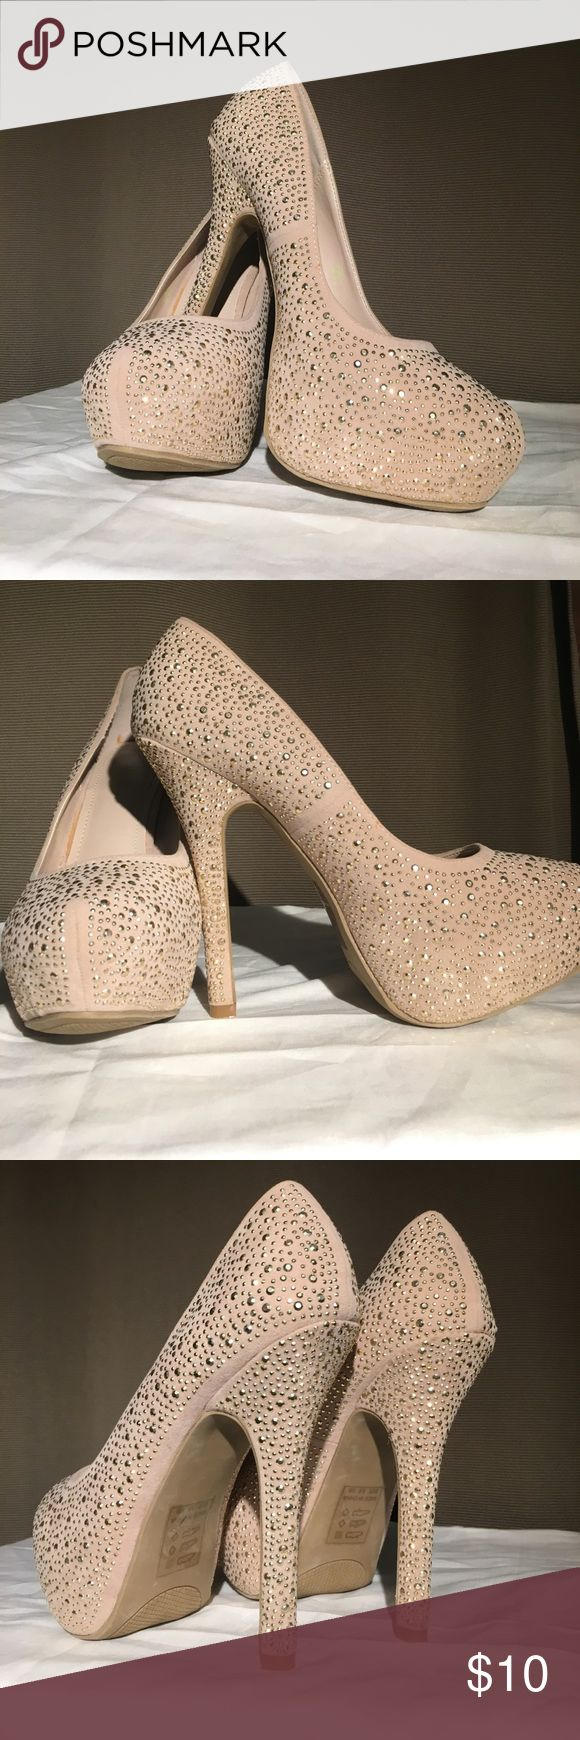 Tay by Shoedazzle: Champagne colored rhinestone Champagne colored rhinestone platform heels. 5 inch heel, inch platform. Never worn!! The orange stains inside shoe is from the glue of the insole. They do run a half size bigger! Shoe Dazzle Shoes Heels